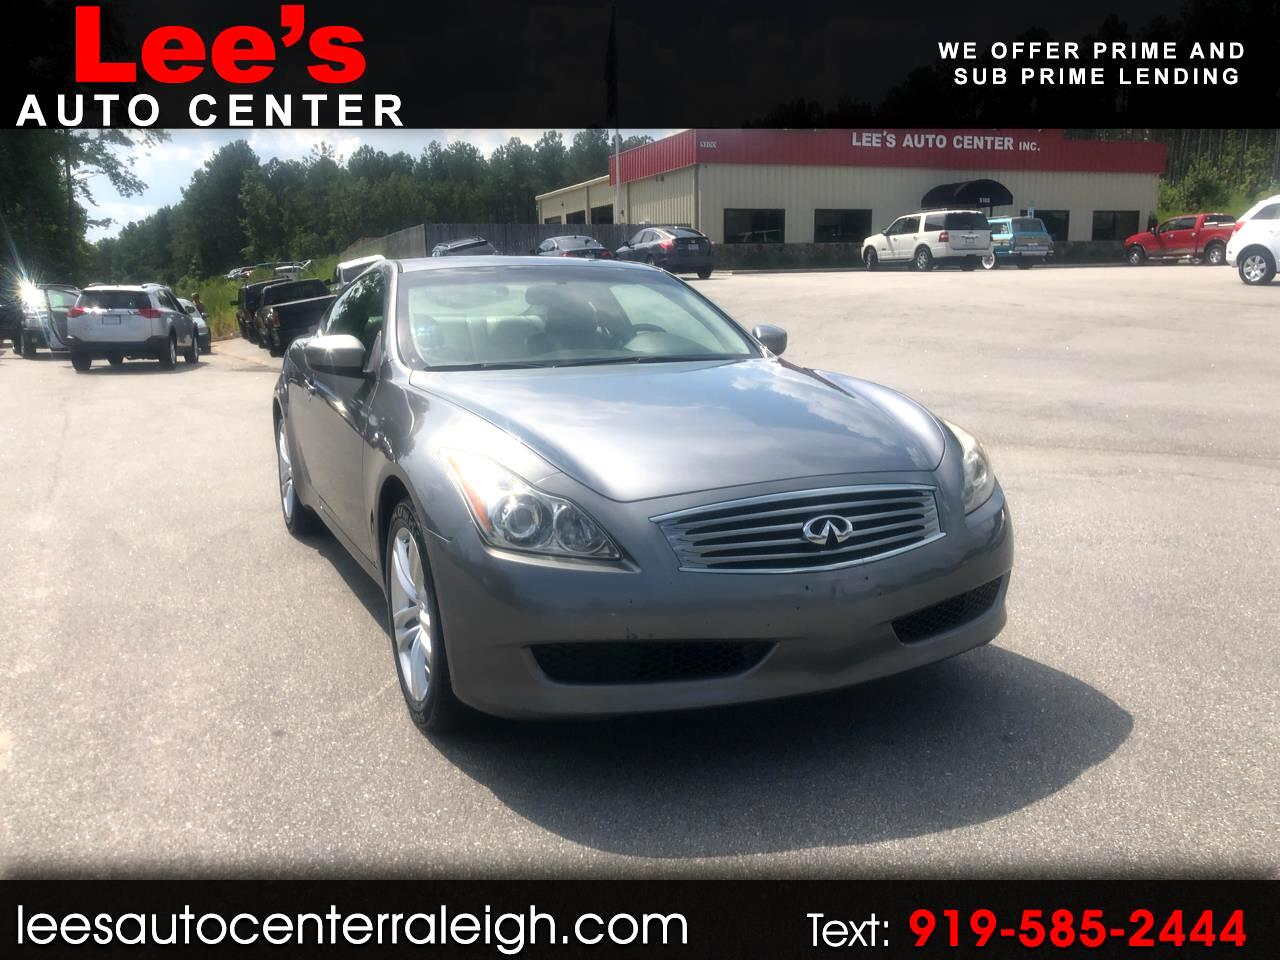 2010 Infiniti G37 Coupe AWD CARFAX 1 OWNER